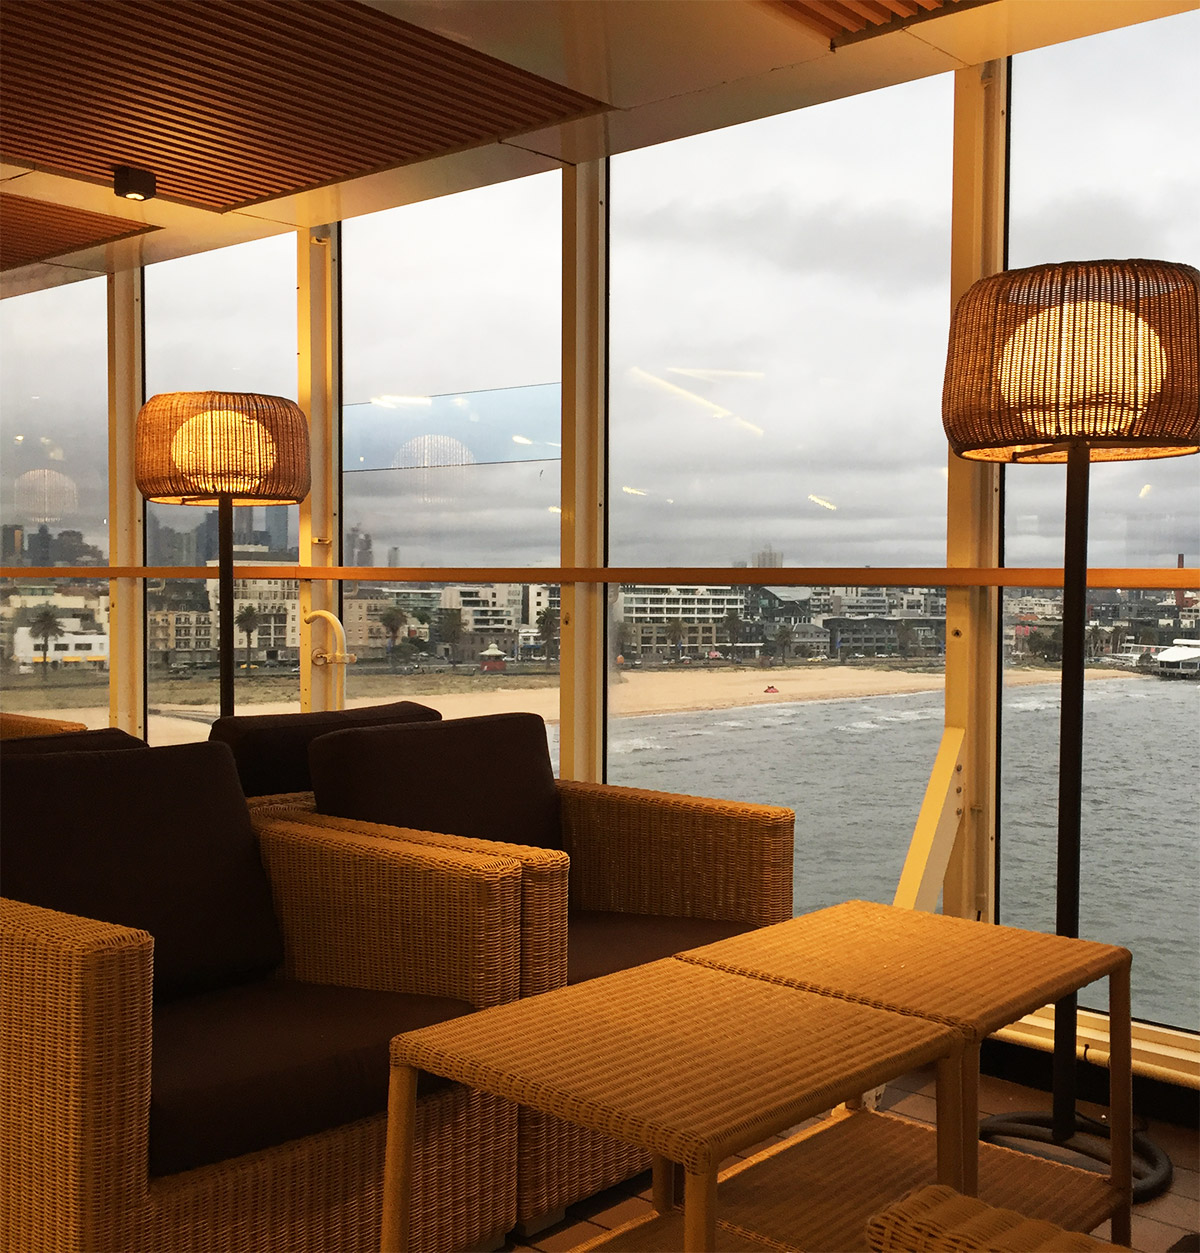 Top Deck Lounge - Warm lighting on a cold day